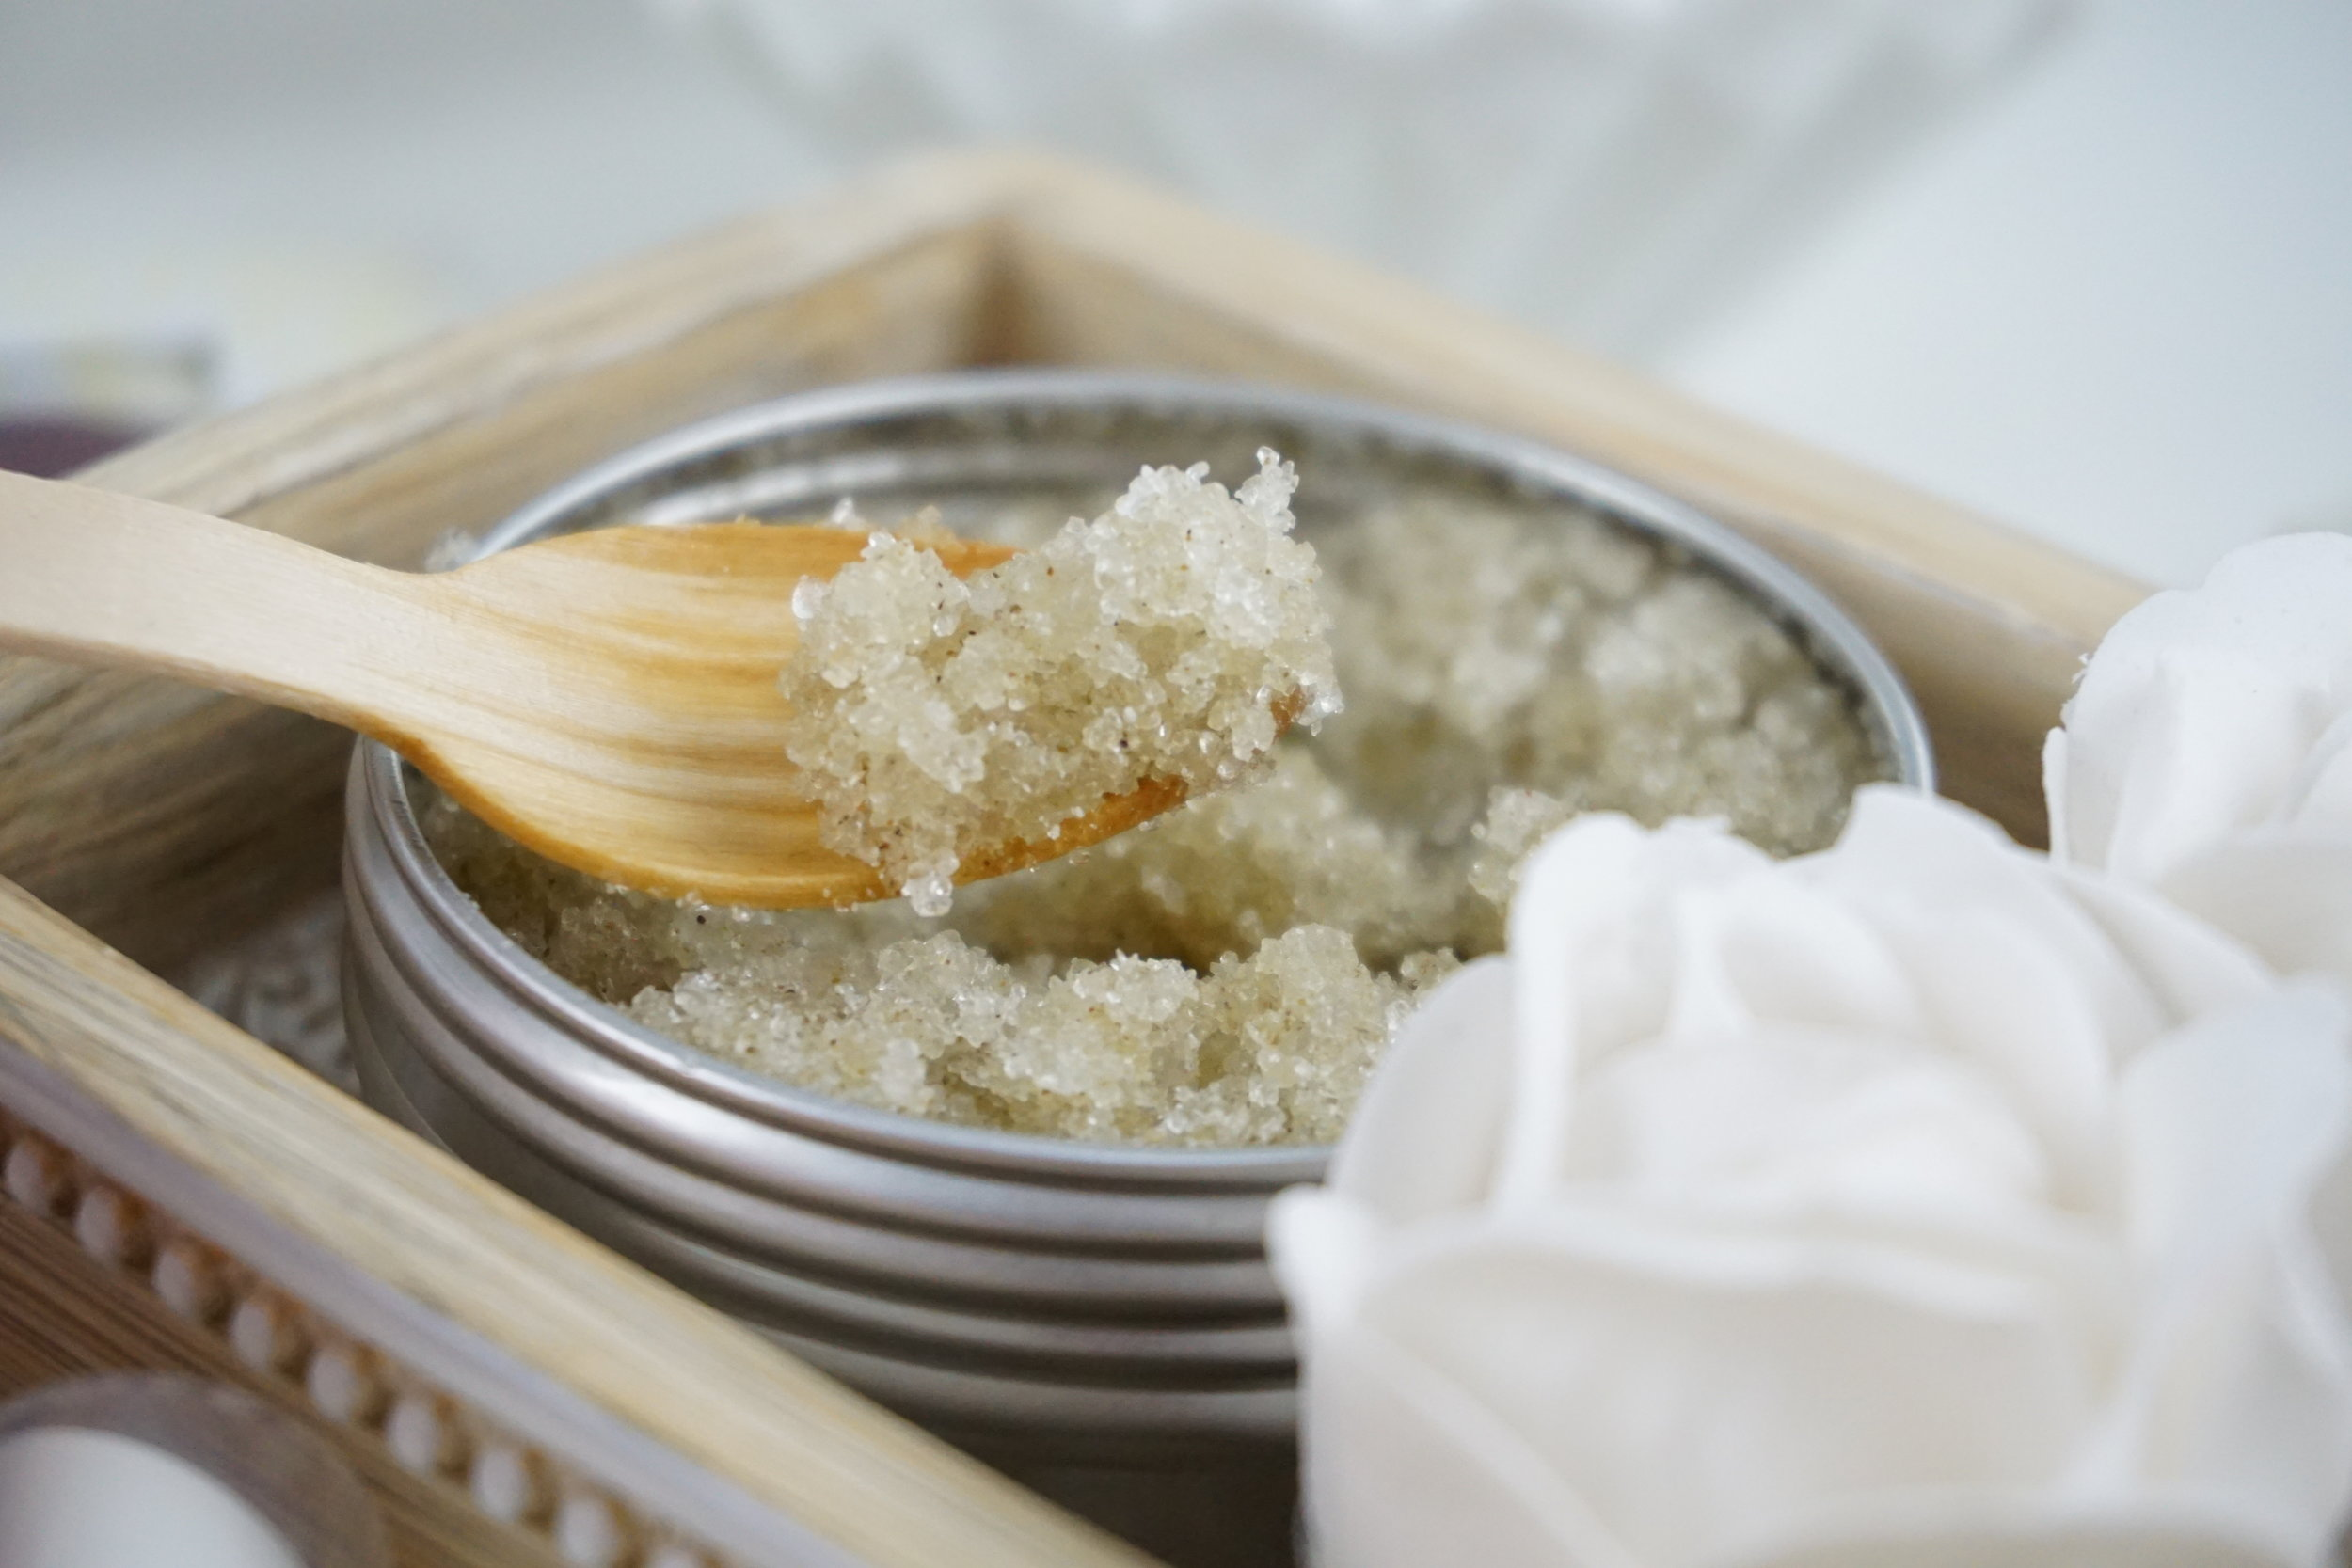 SALT SCRUBS - I would highly recommend salt scrubs for legs, bums and tums as the larger grains in salt scrubs are fantastic at bringing the skin to life and increasing circulation in these areas. It's also where I see the biggest difference afterwards when skin looks and feels rejuvenated. Bear in mind these larger particles are a little looser and tend to slide off damp skin so it might be worth bearing in mind that when using a salt scrub you pat the skin dry a little before application to keep the scrub on the skin.I recommend: The Salt Parlour - 'Calm' Salt Scrub with Rose + Shea Butter. This (along with their Lime & Avocado scrub!) are my two favourites which are perfect for revitalising and buffing the surface of the skin. They are 100% cruelty free and vegan and their tins are fully recyclable AND re-useable! (www.thesaltparlour.co.uk, £15.00)